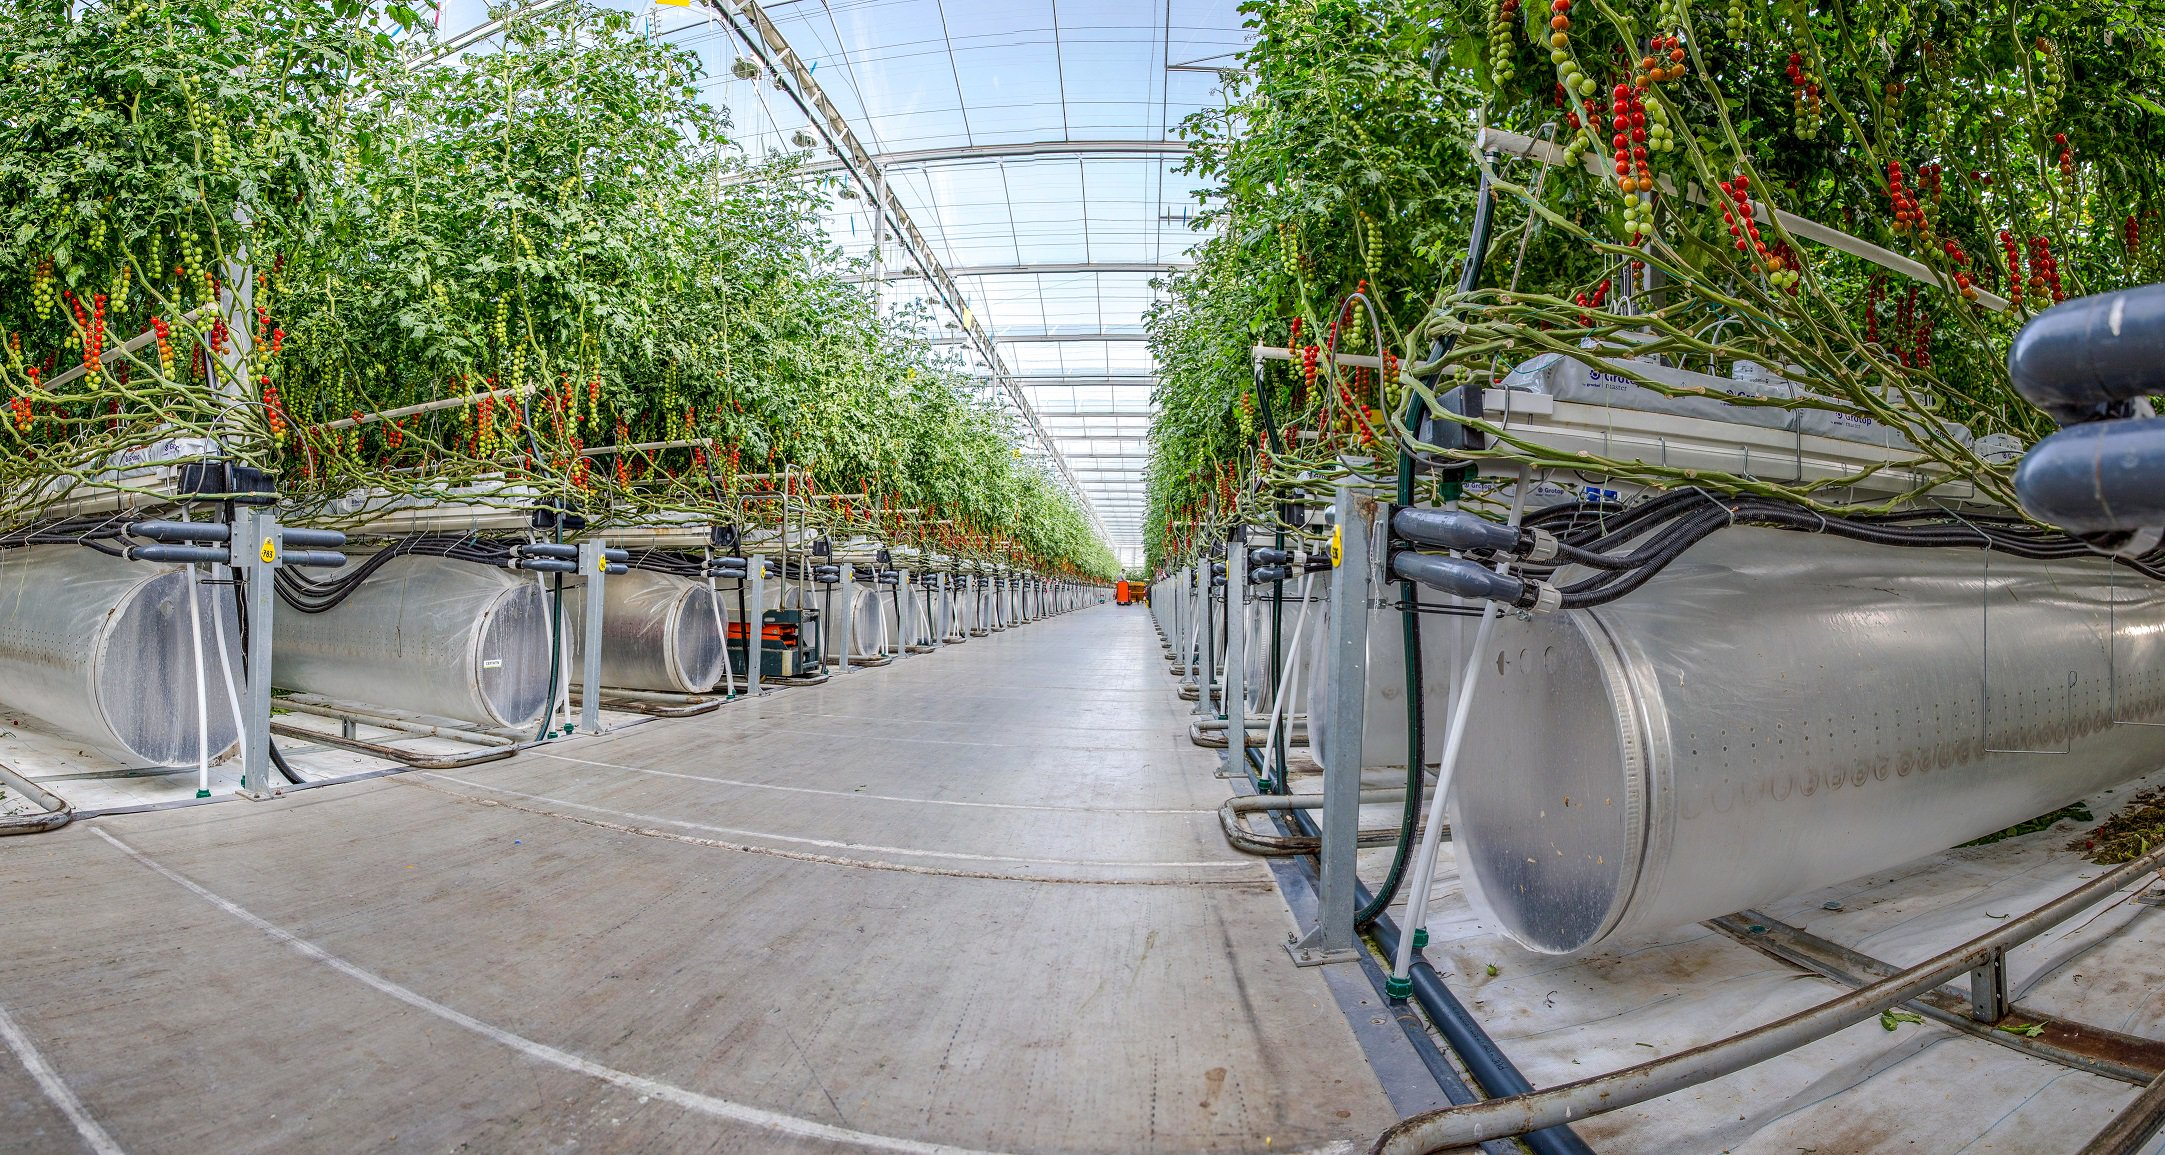 UAE-based Pure Harvest announces progress in $4.5m seed funding round